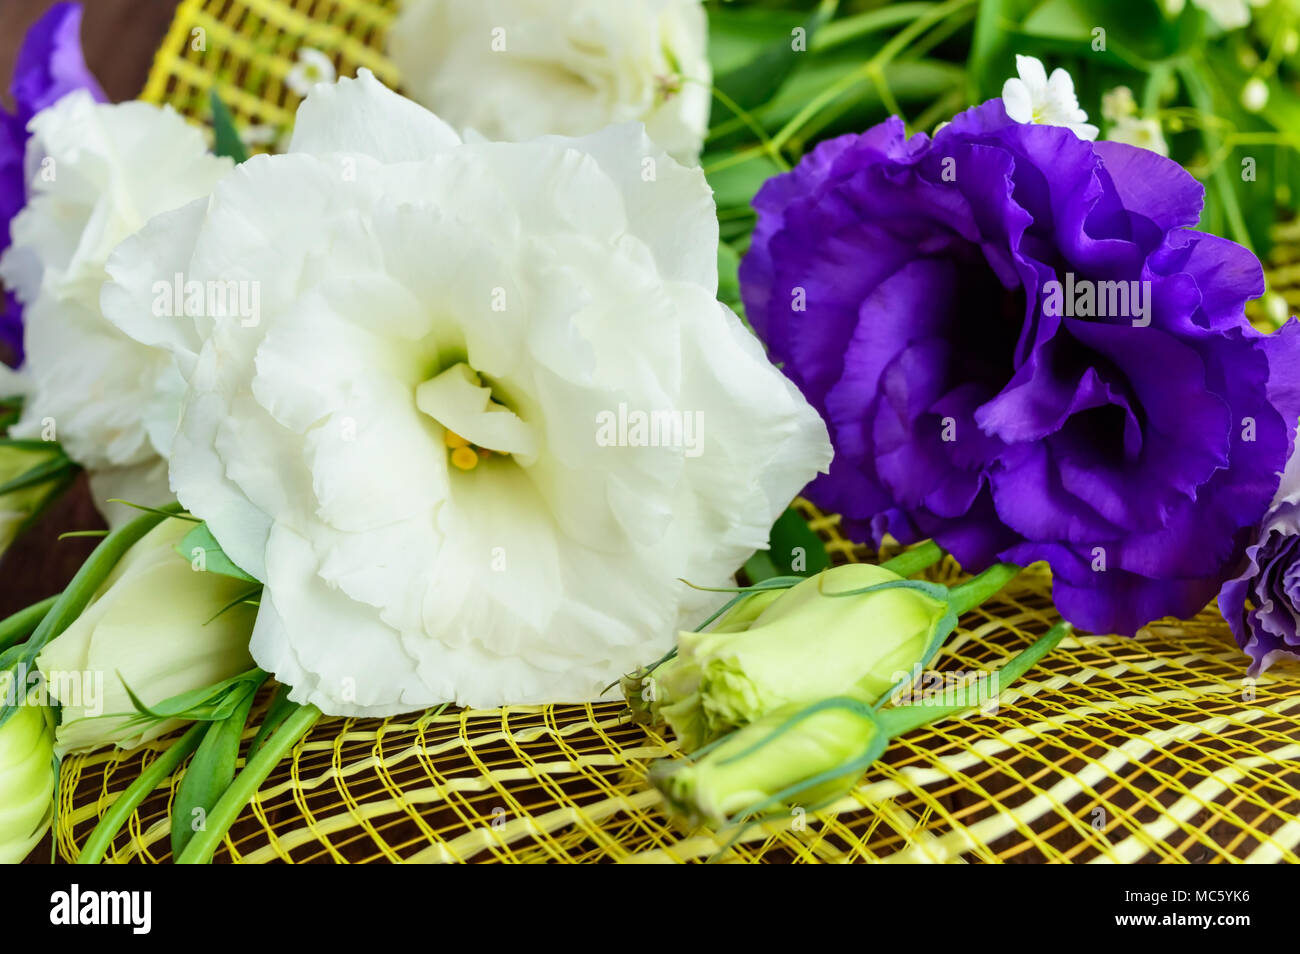 Freshly picked white and purple flowers eustomy lisianthus in the freshly picked white and purple flowers eustomy lisianthus in the form of a bouquet on the wooden background close up izmirmasajfo